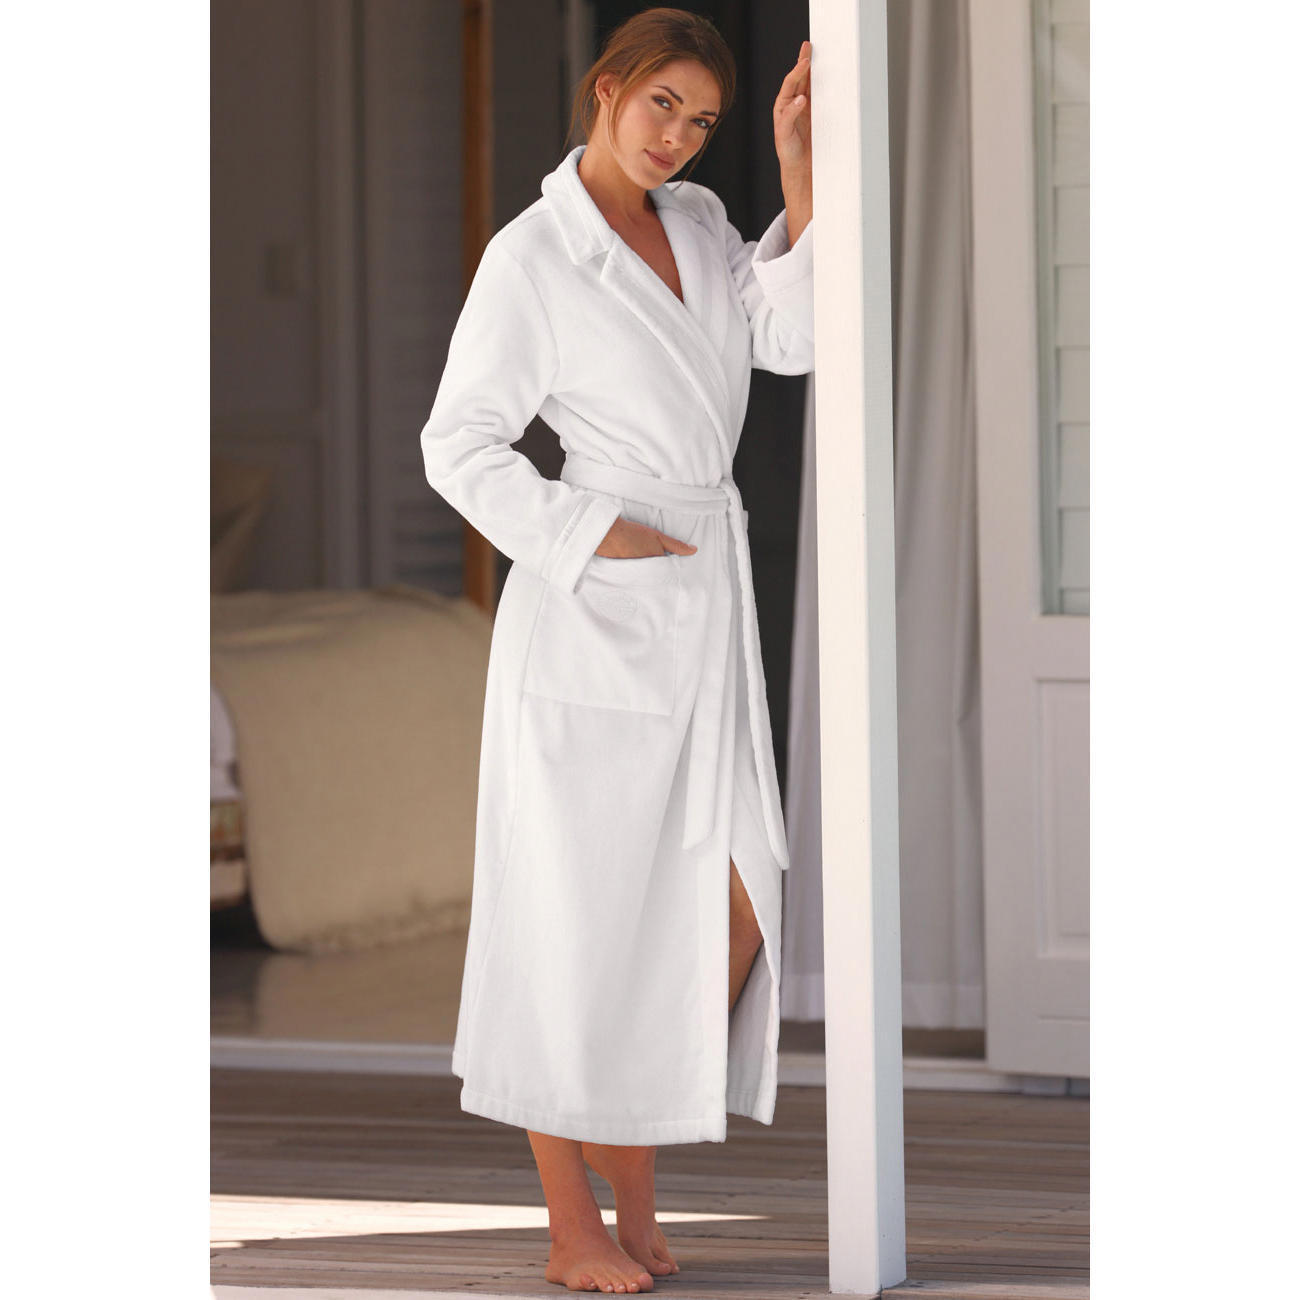 buy f raud couture bathrobe 3 year product guarantee. Black Bedroom Furniture Sets. Home Design Ideas